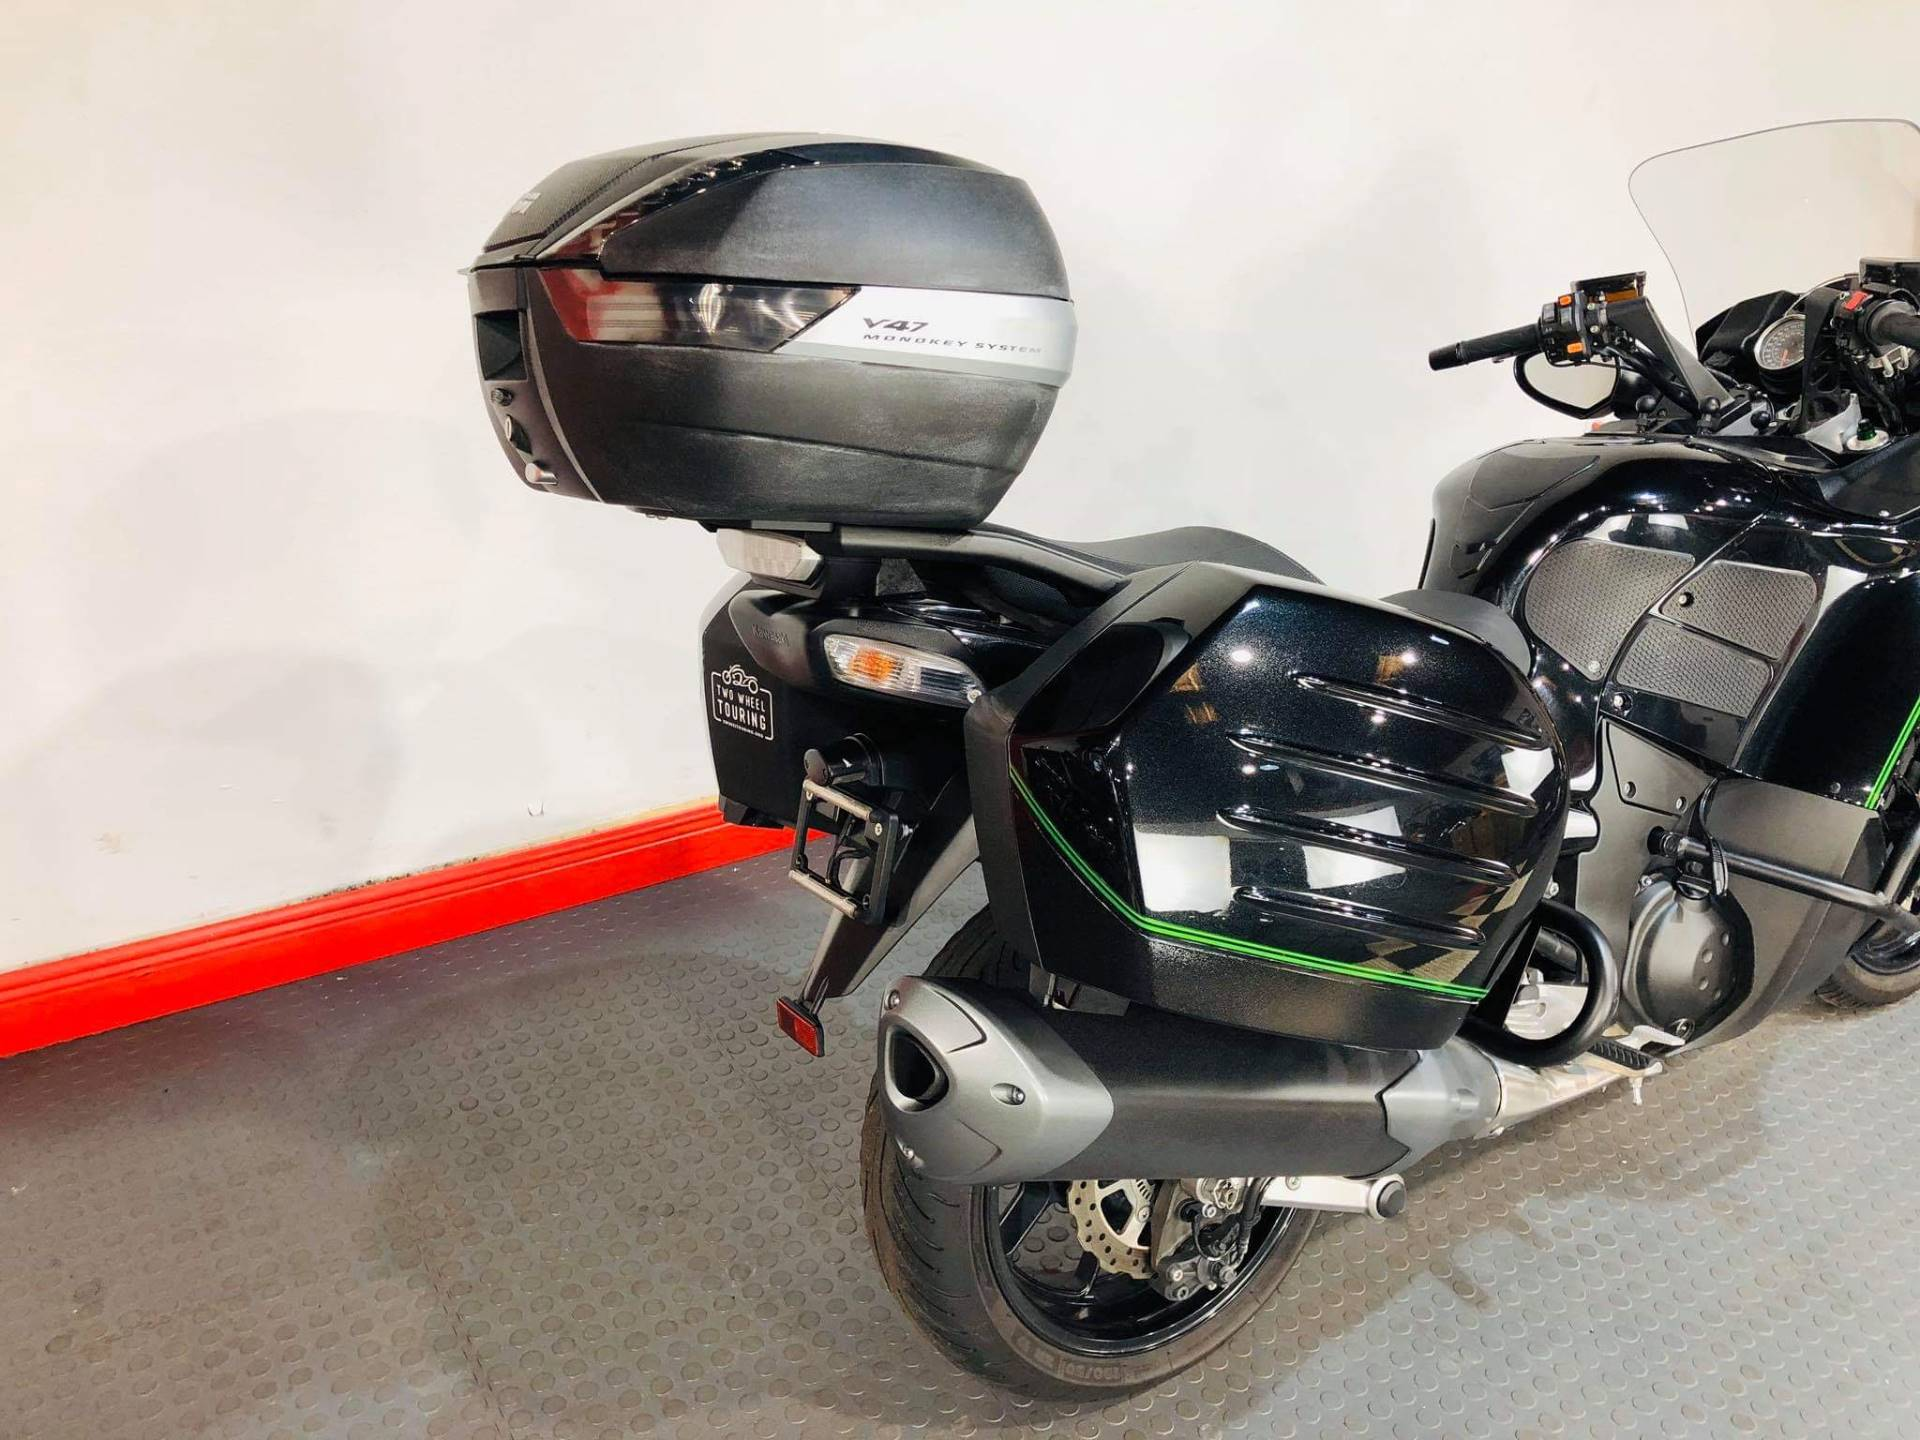 2016 Kawasaki Concours 14 ABS in Tampa, Florida - Photo 13